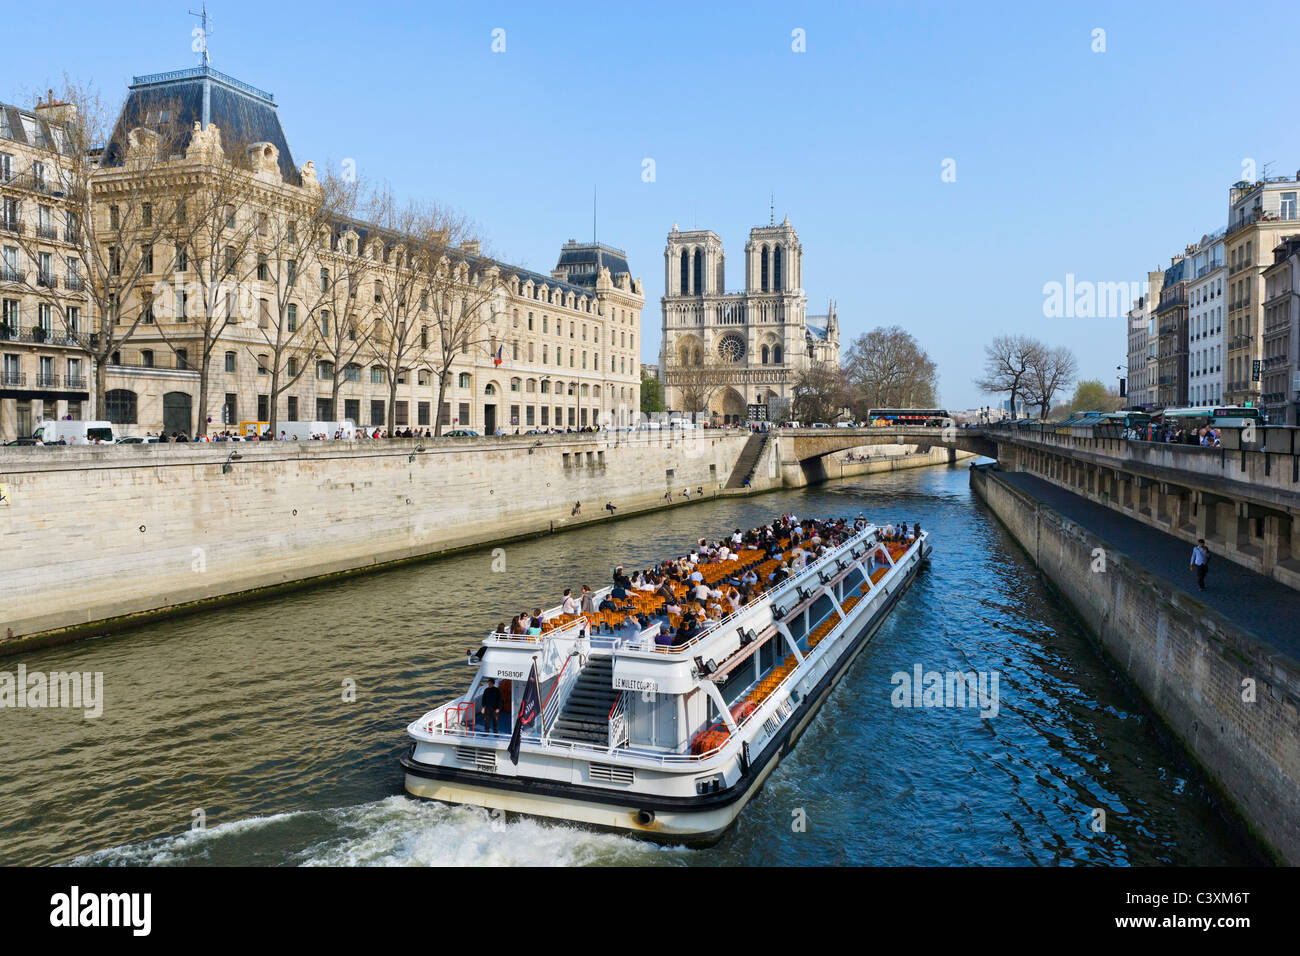 Cruise boat on the River Seine from the Pont St Michel with the Cathedral of Notre Dame behind, Paris, France - Stock Image